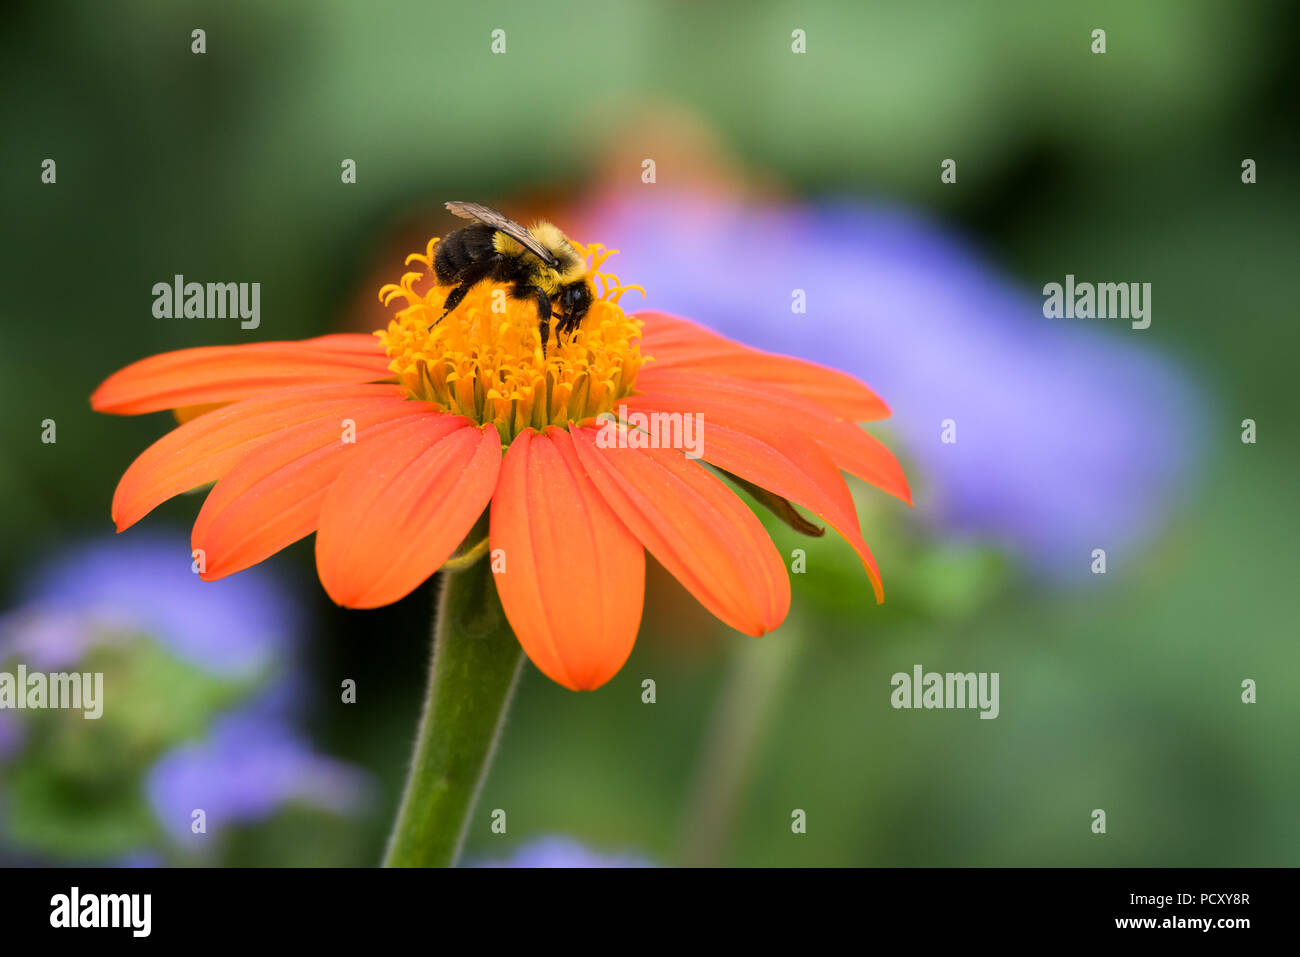 A Common Eastern Bumble Bee feeds on a red aka Mexican sunflower at the popular Rosetta McClain Gardens near Toronto, Ontario.Stock Photo